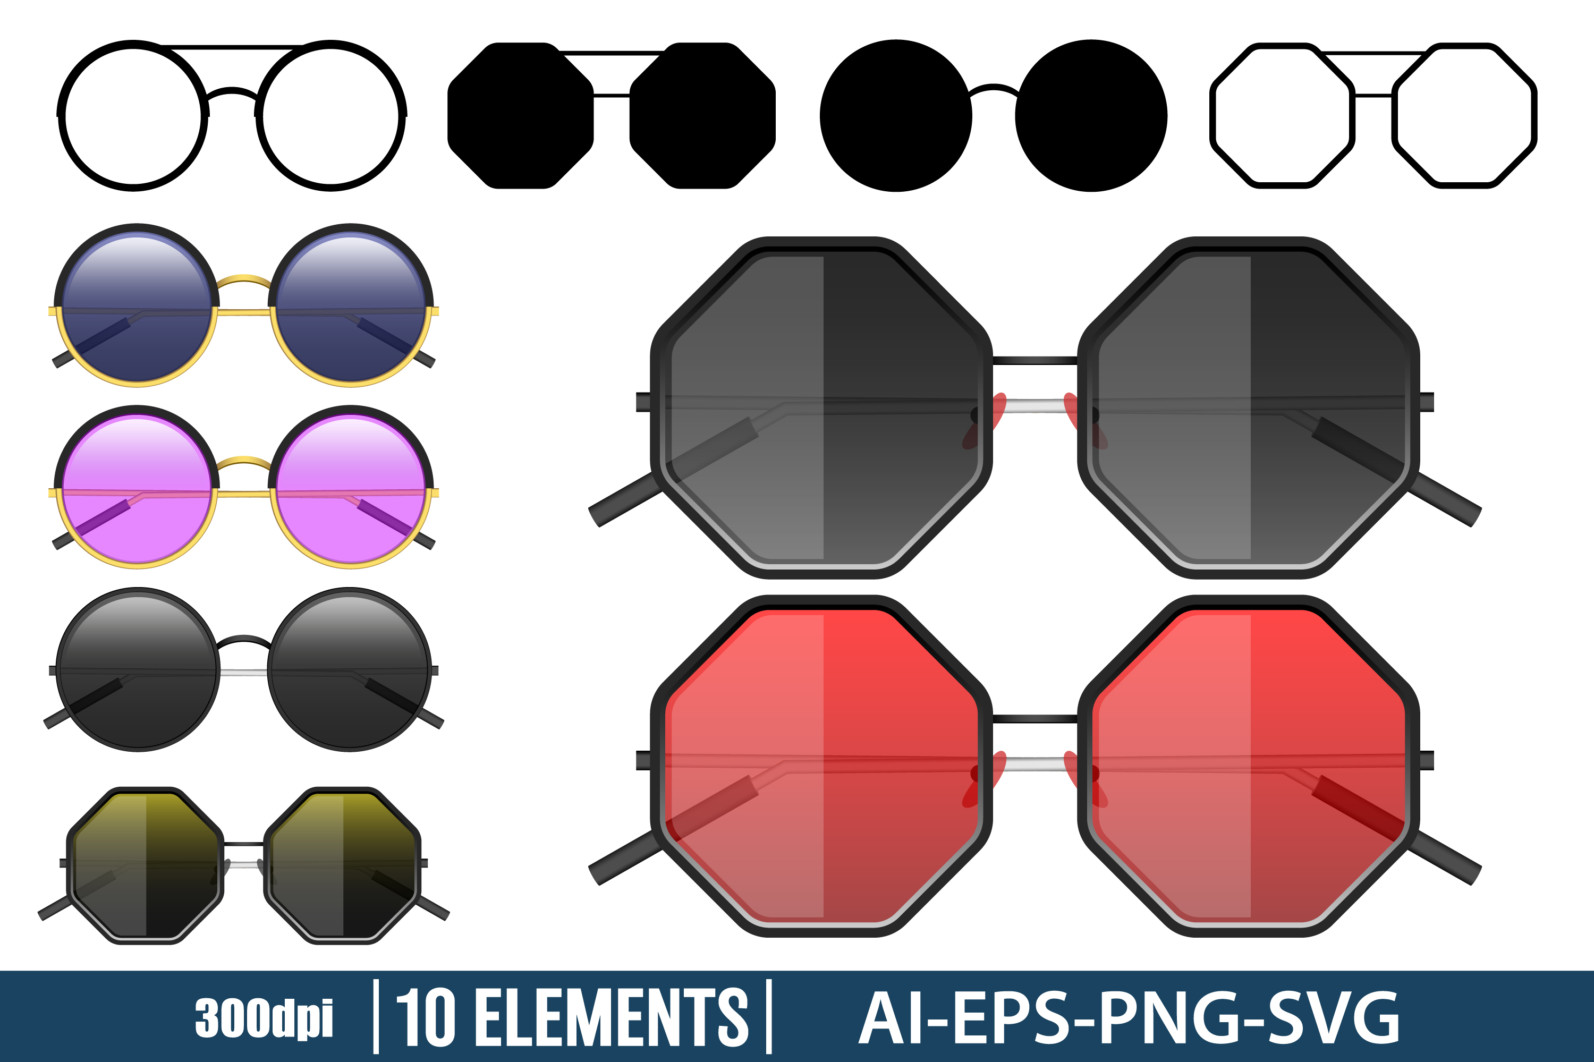 Hipster sunglasses clipart vector design illustration. Sunglasses set. Vector Clipart Print - HIPSTER SUNGLASSES scaled -